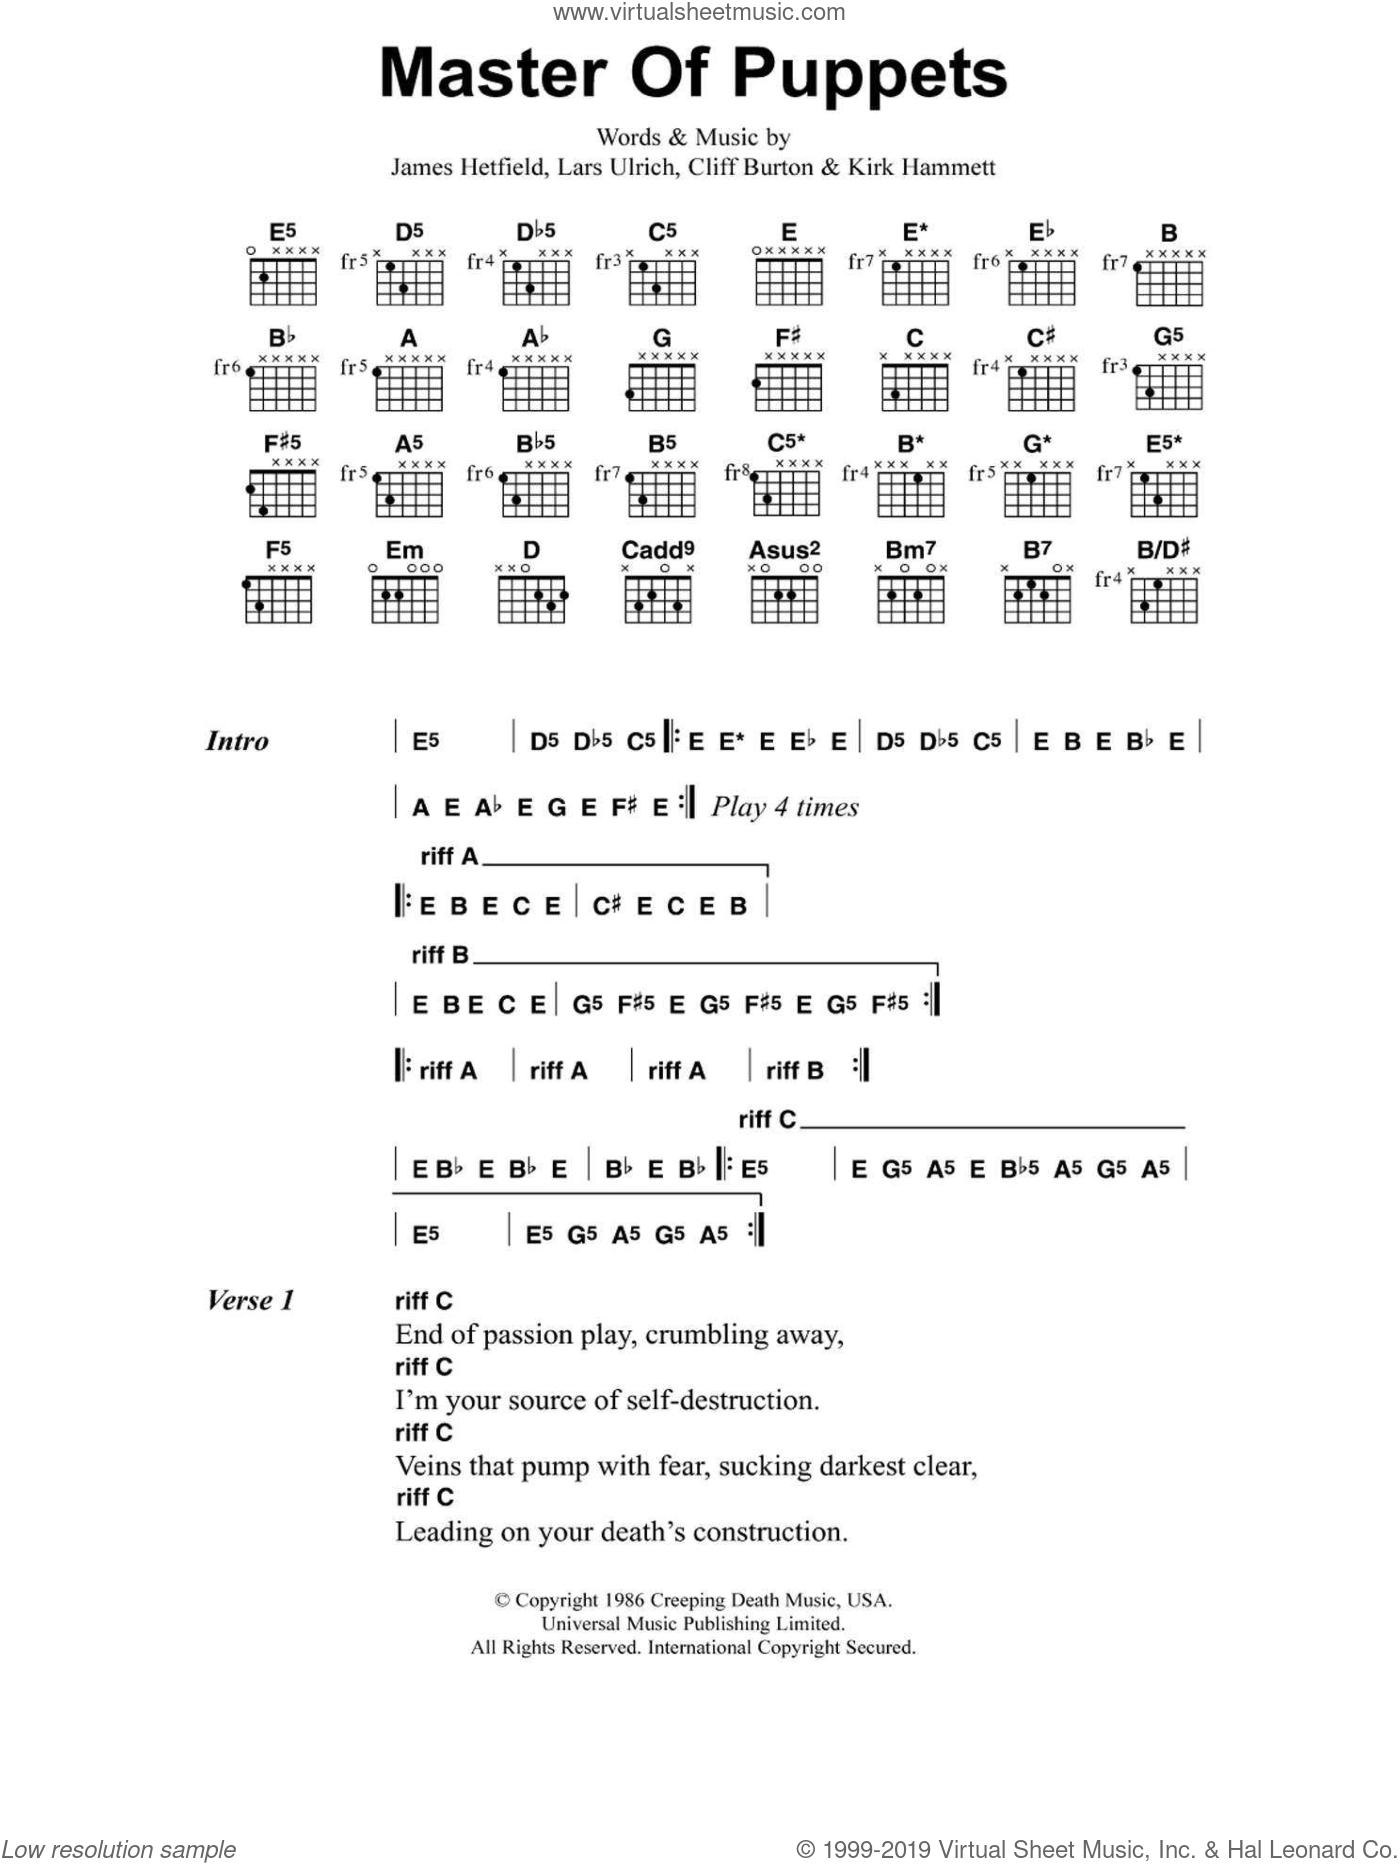 Master Of Puppets sheet music for guitar (chords) by Cliff Burton